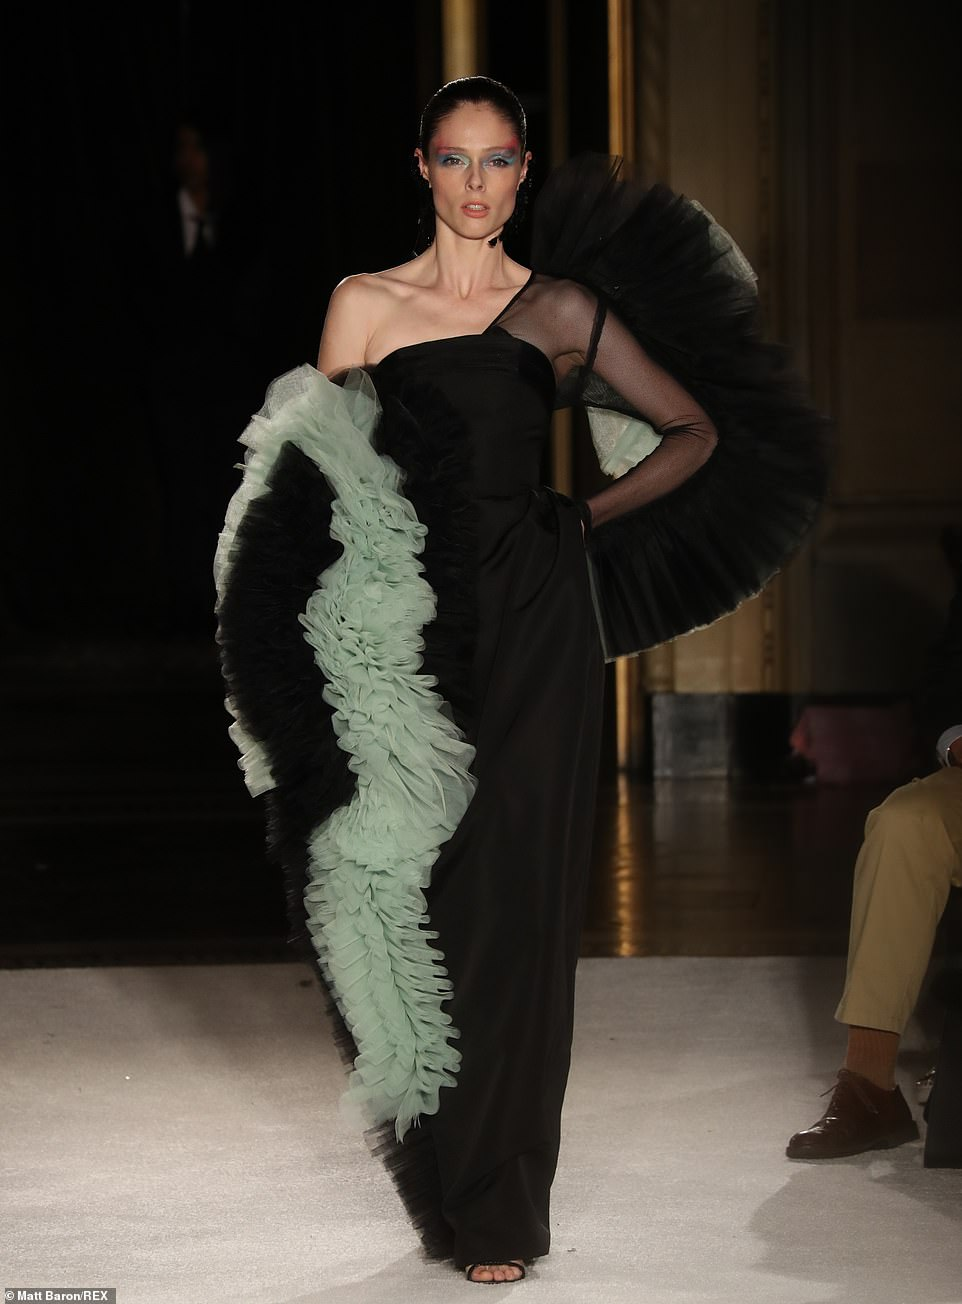 Flashy: Coco walked the runway in an incredibly eye-catching number with teal puffs